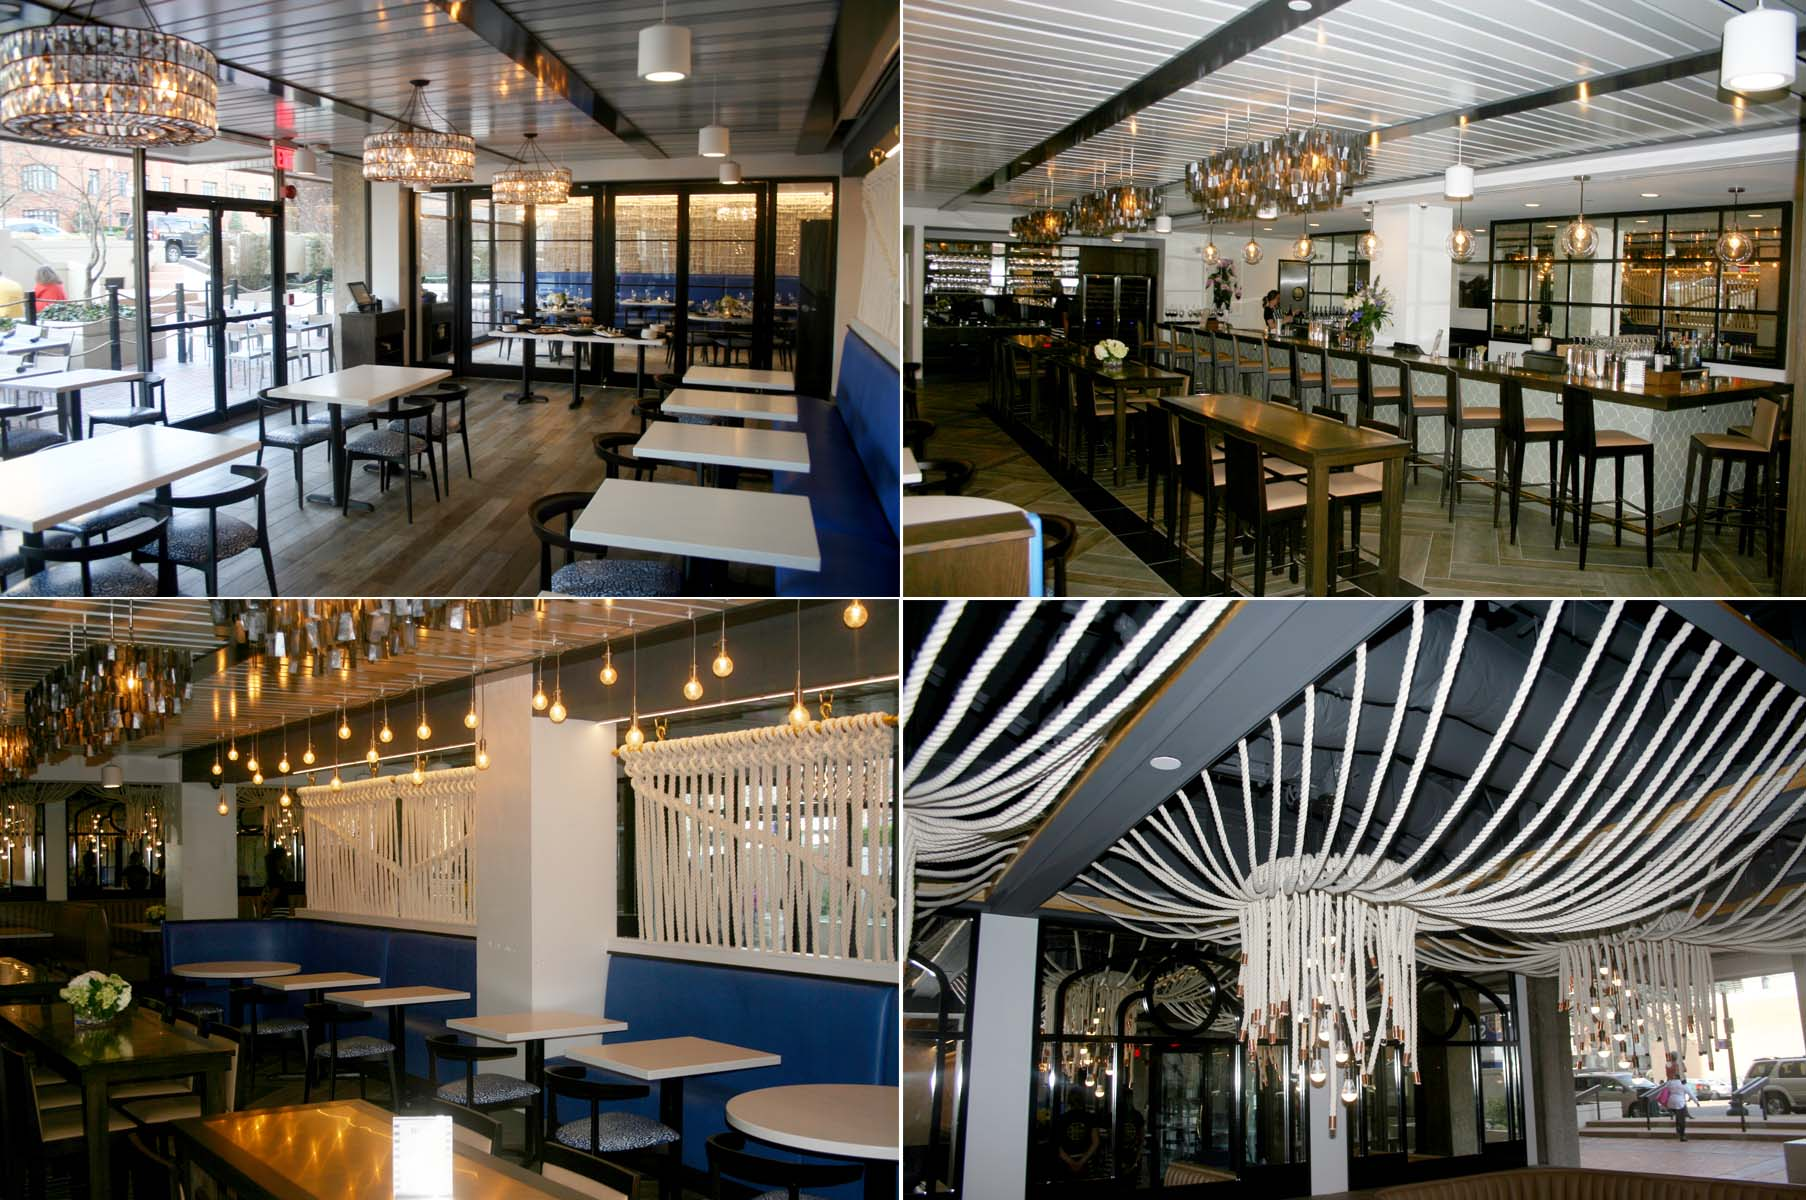 The interior of All set from the dining room to the bar is reminiscent of a New England sea shanty. (Photos: Mark Heckathorn/DC on Heels)